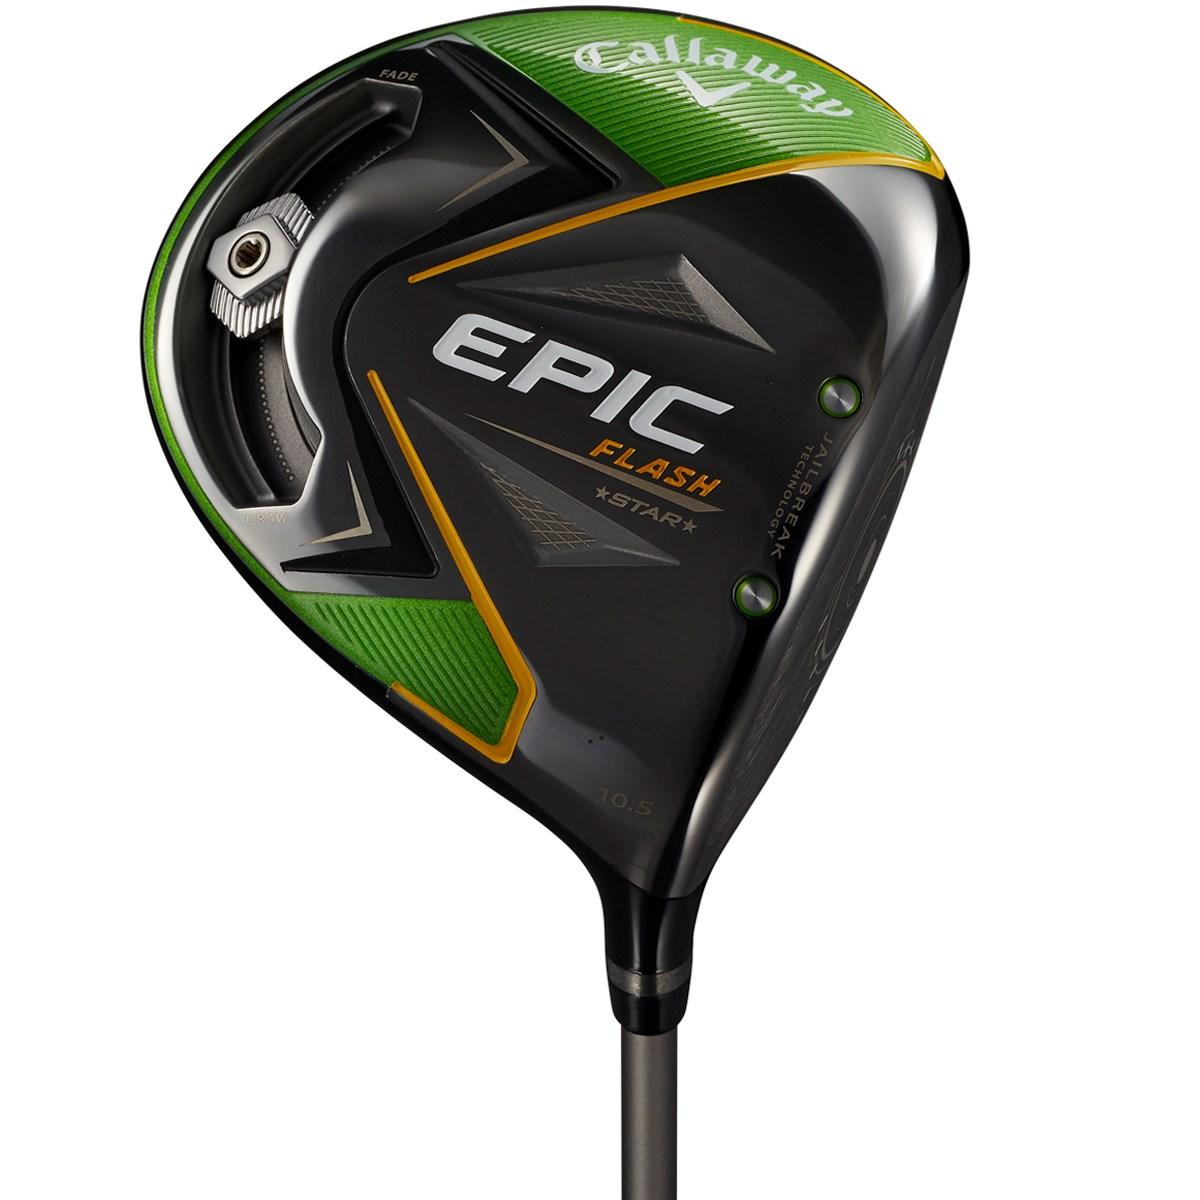 キャロウェイゴルフ GBB EPIC エピックフラッシュ STAR ドライバー Speeder Evolution for Callaway シャフト:Speeder Evolution for Callaway S 10.5° 59.5° 45.75inch